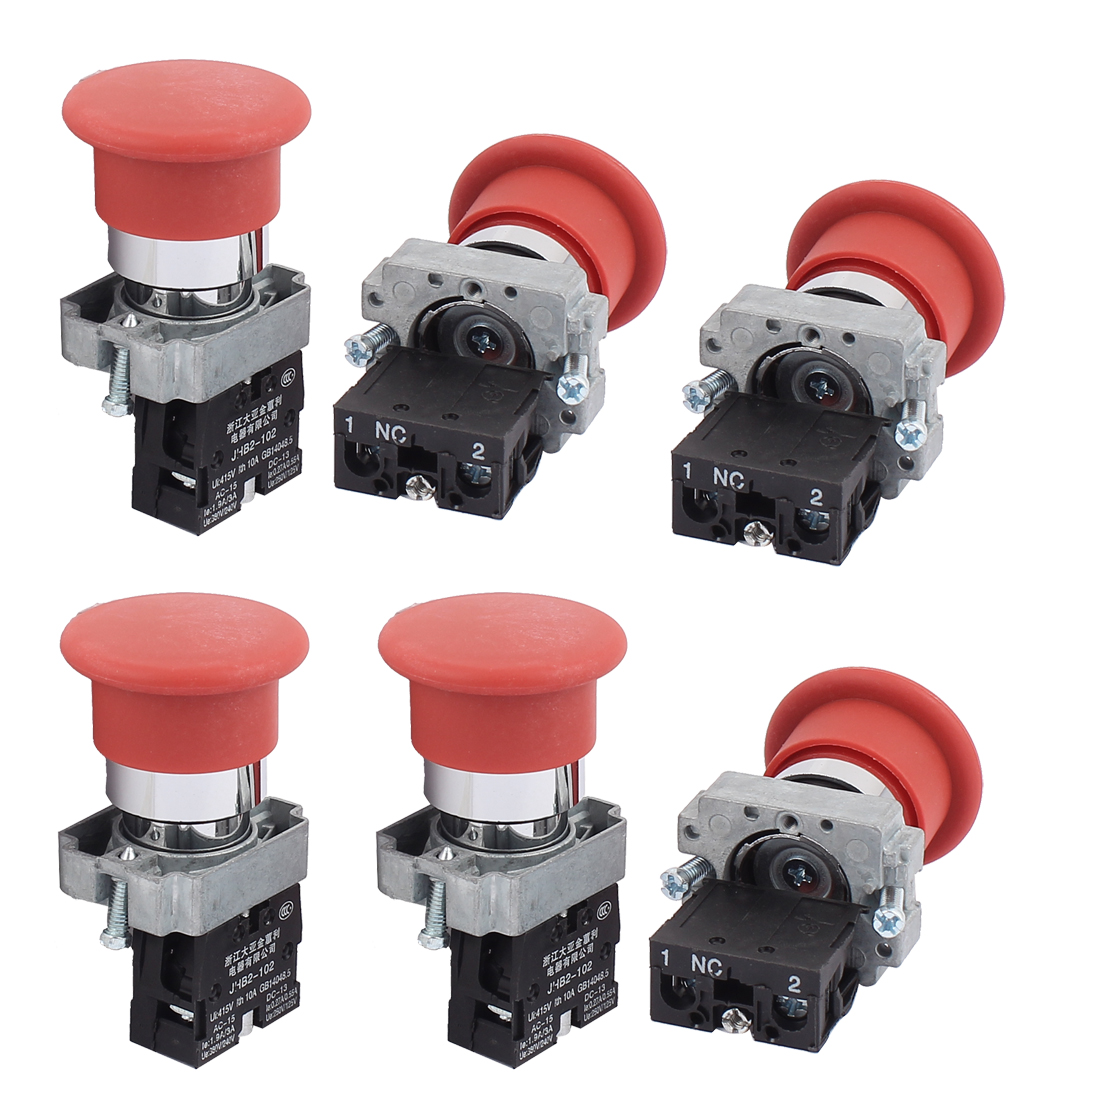 AC 415V 10A Momentary NC Push Button Rotary Switch Contact Block 6PCS